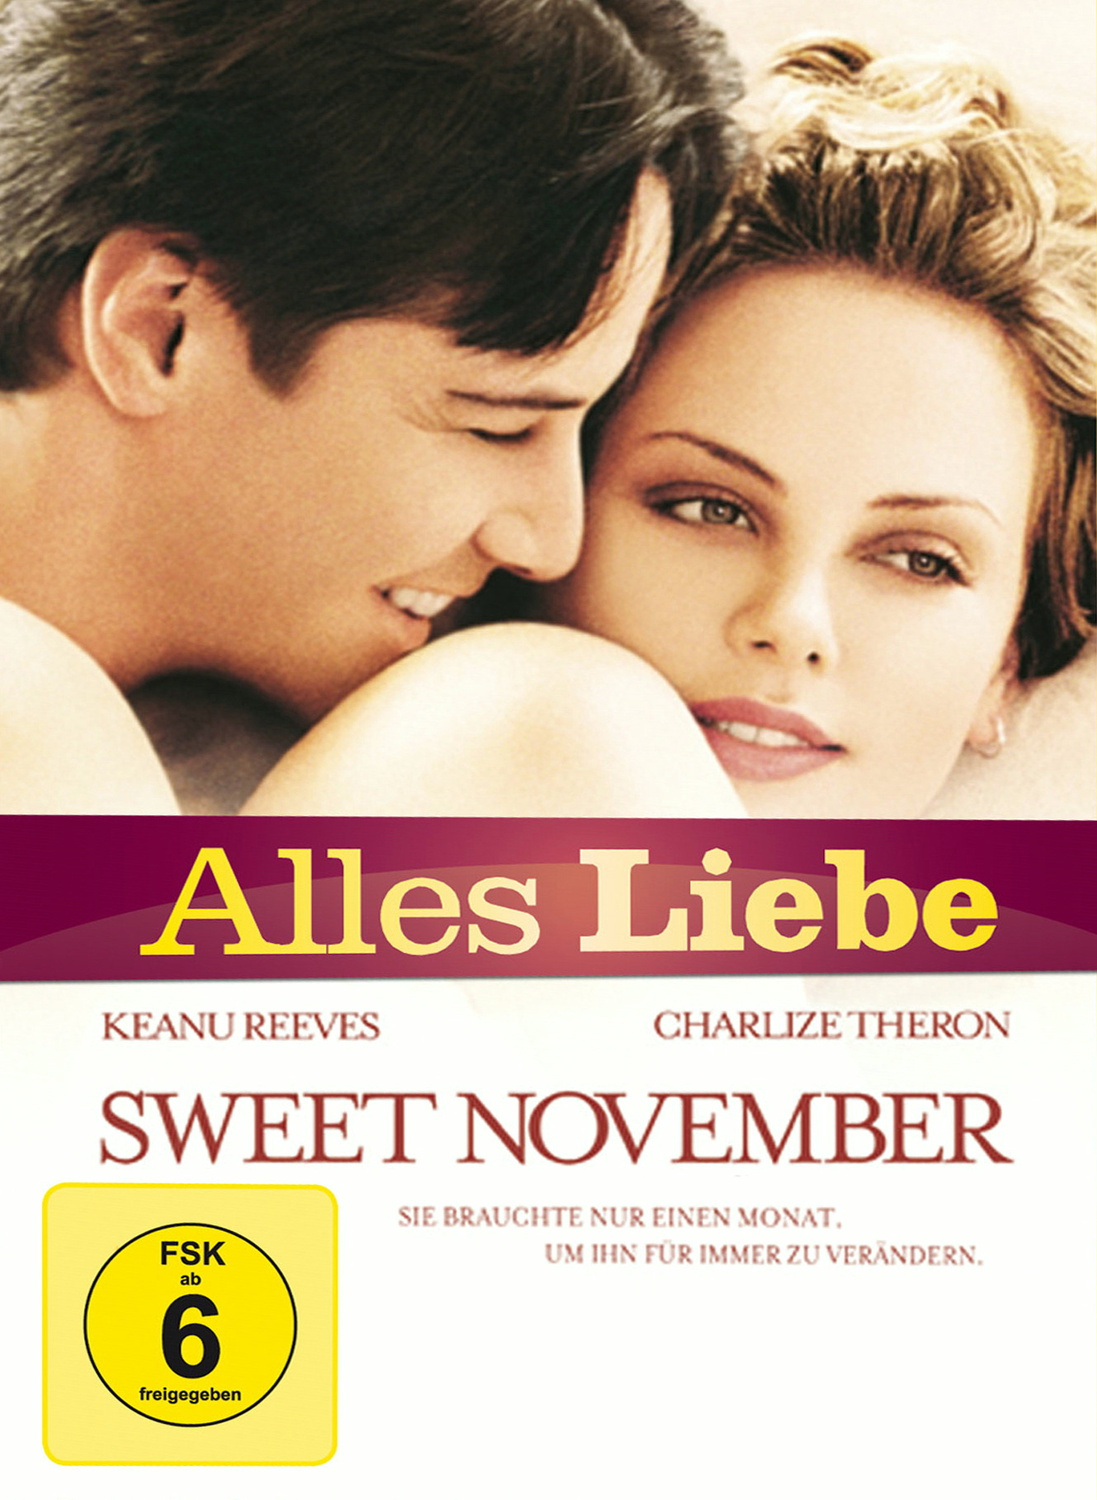 Sweet November [Alles Liebe Edition]